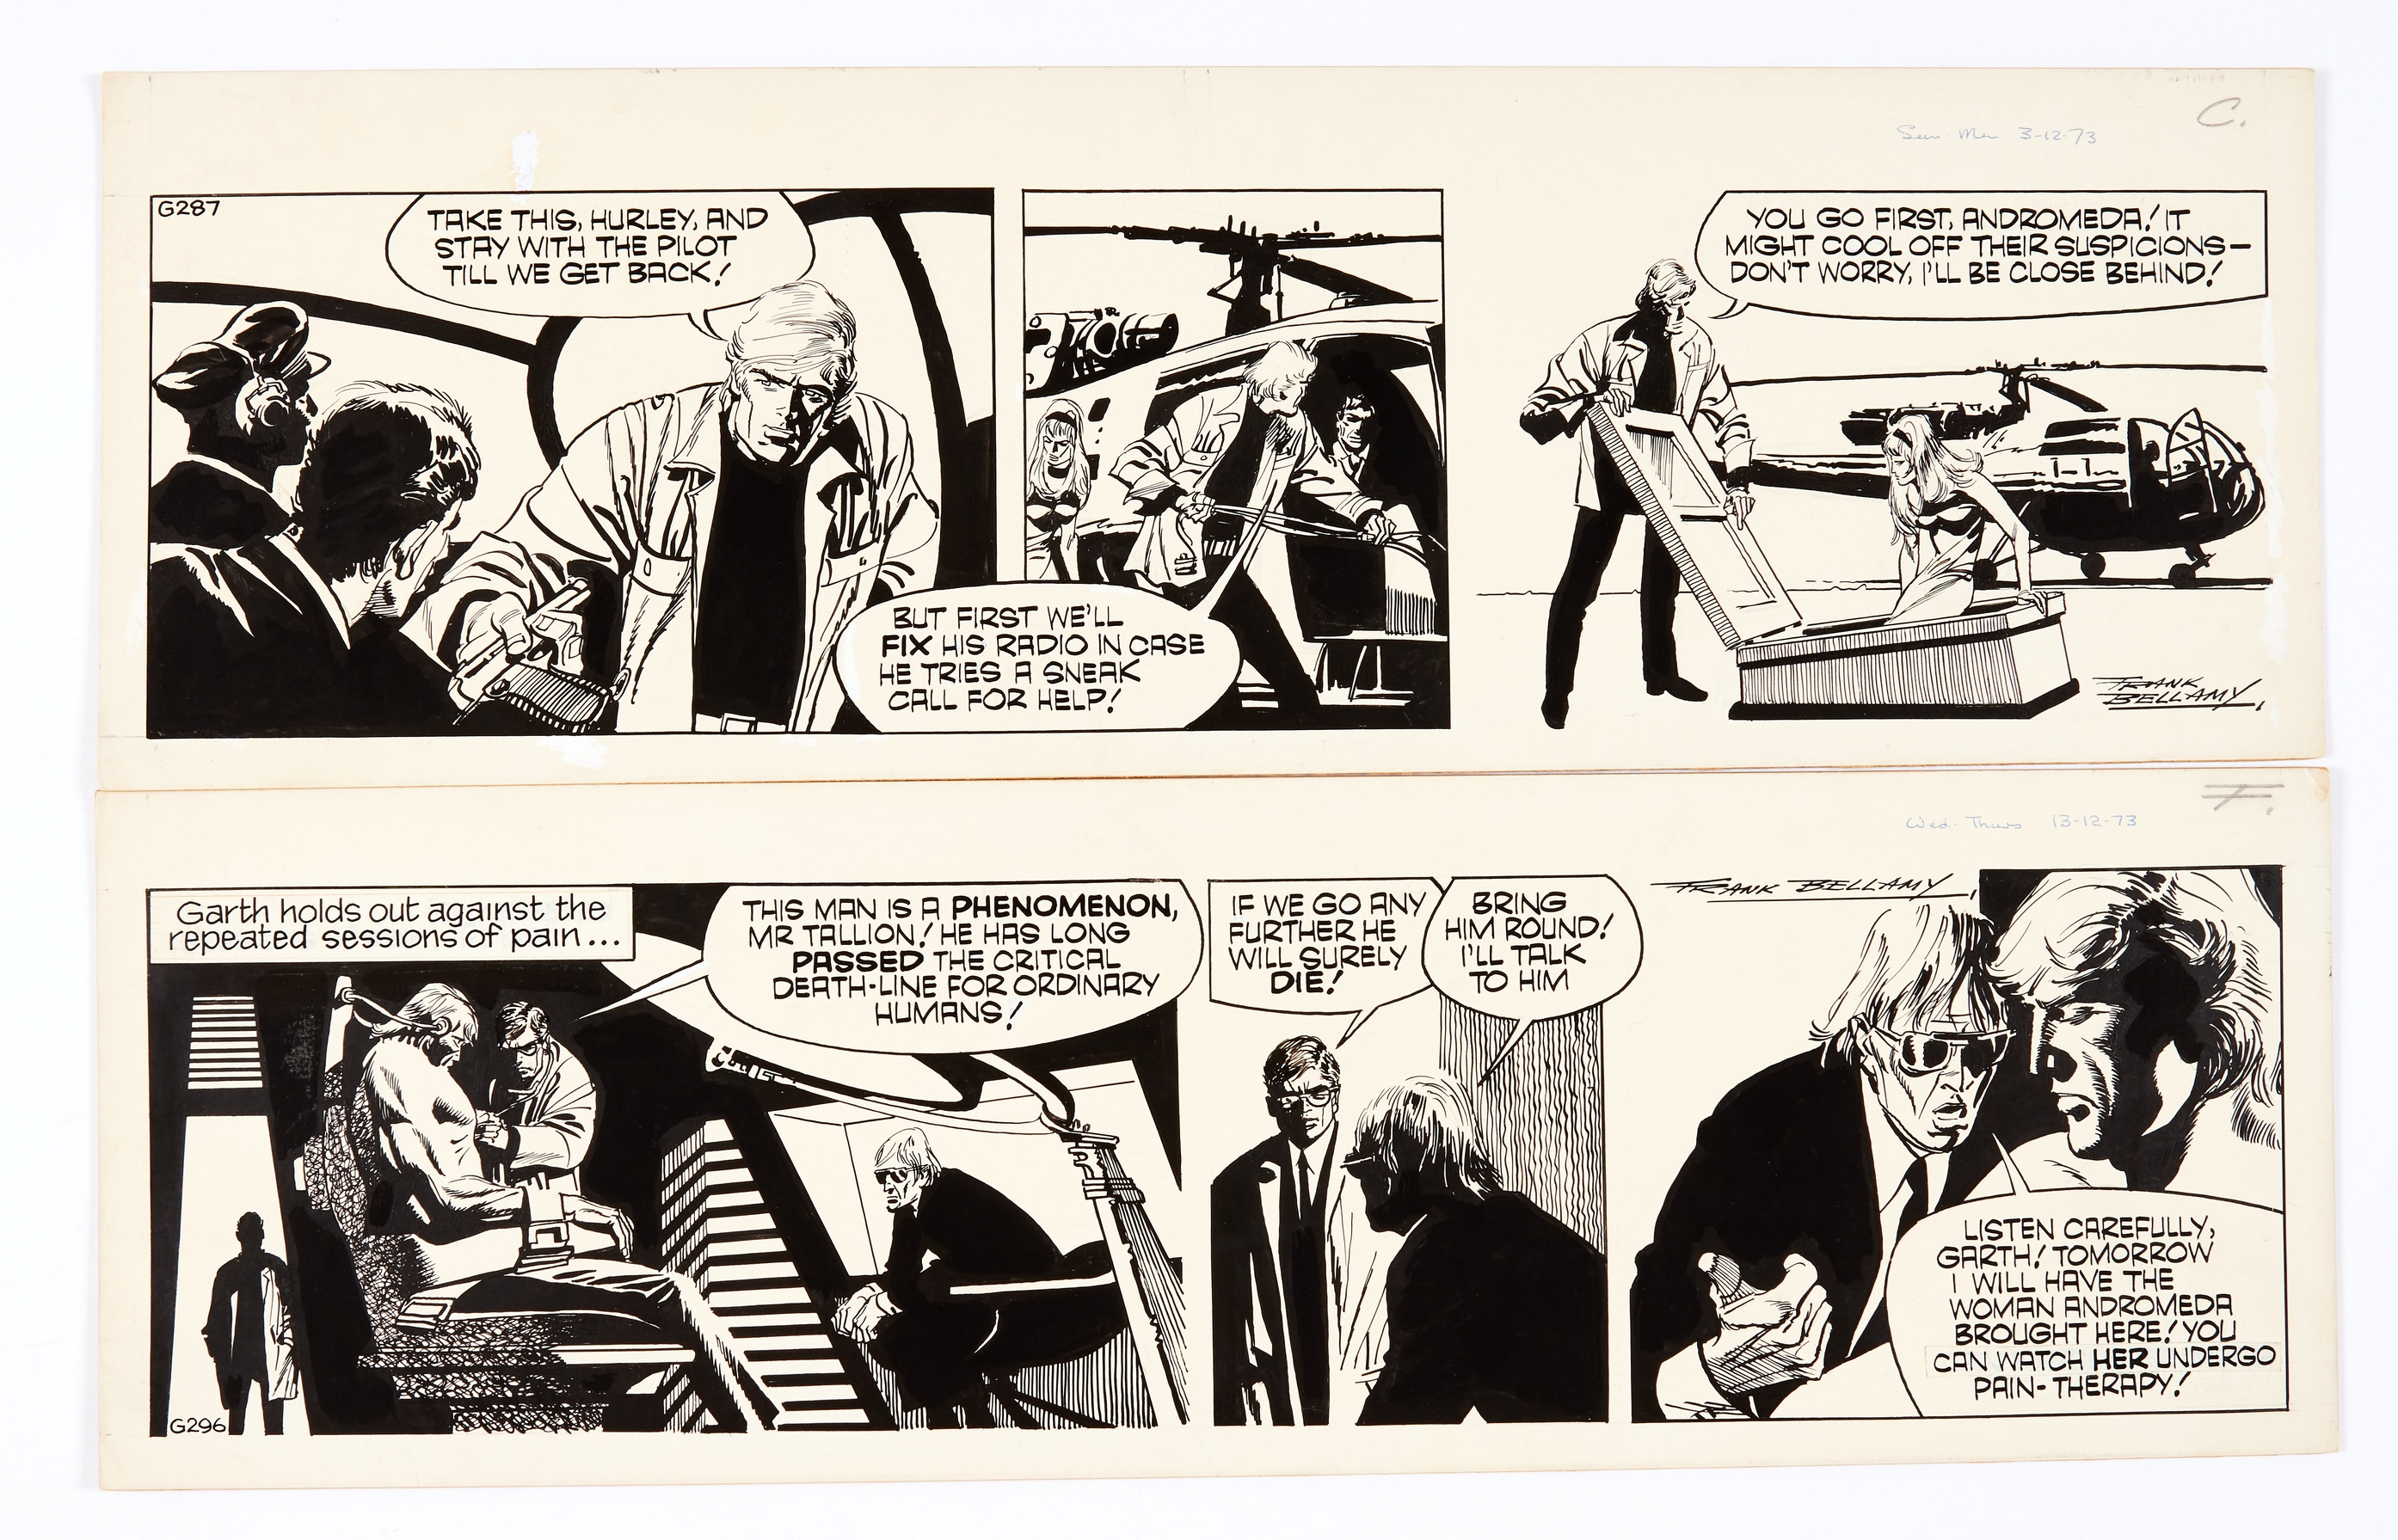 Garth: 'The Wreckers' two signed original artworks (1973) by Frank Bellamy for the D. Mirror 3/13